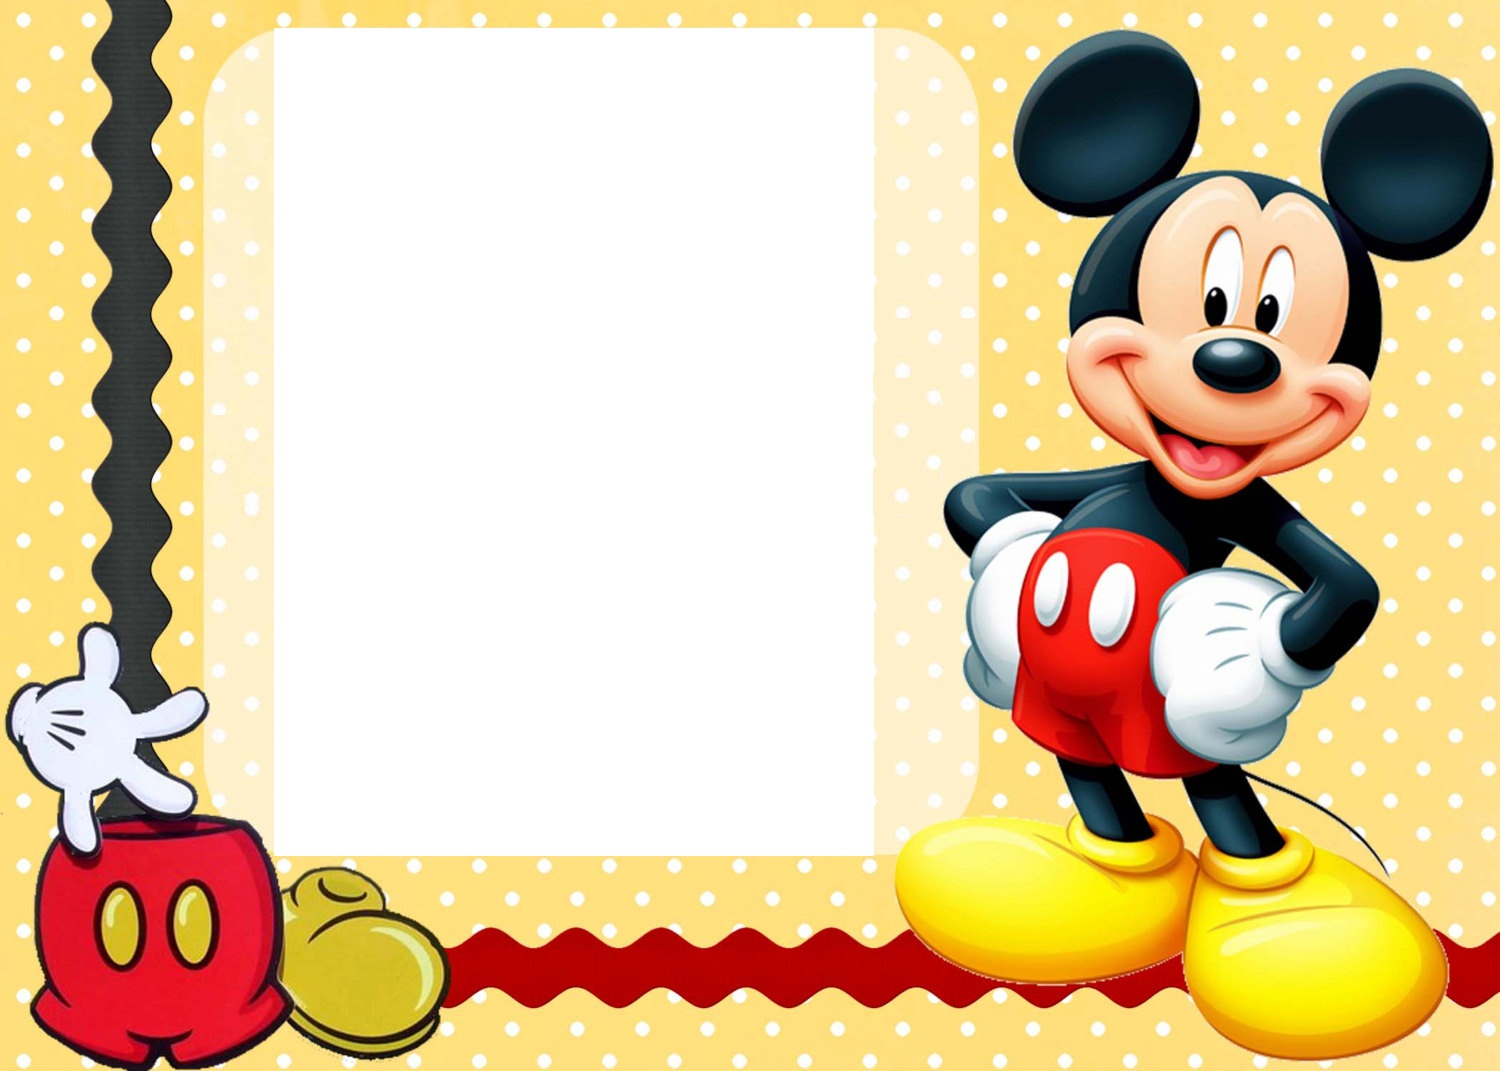 free printable mickey mouse birthday cards luxury lifestyle design architecture blog by